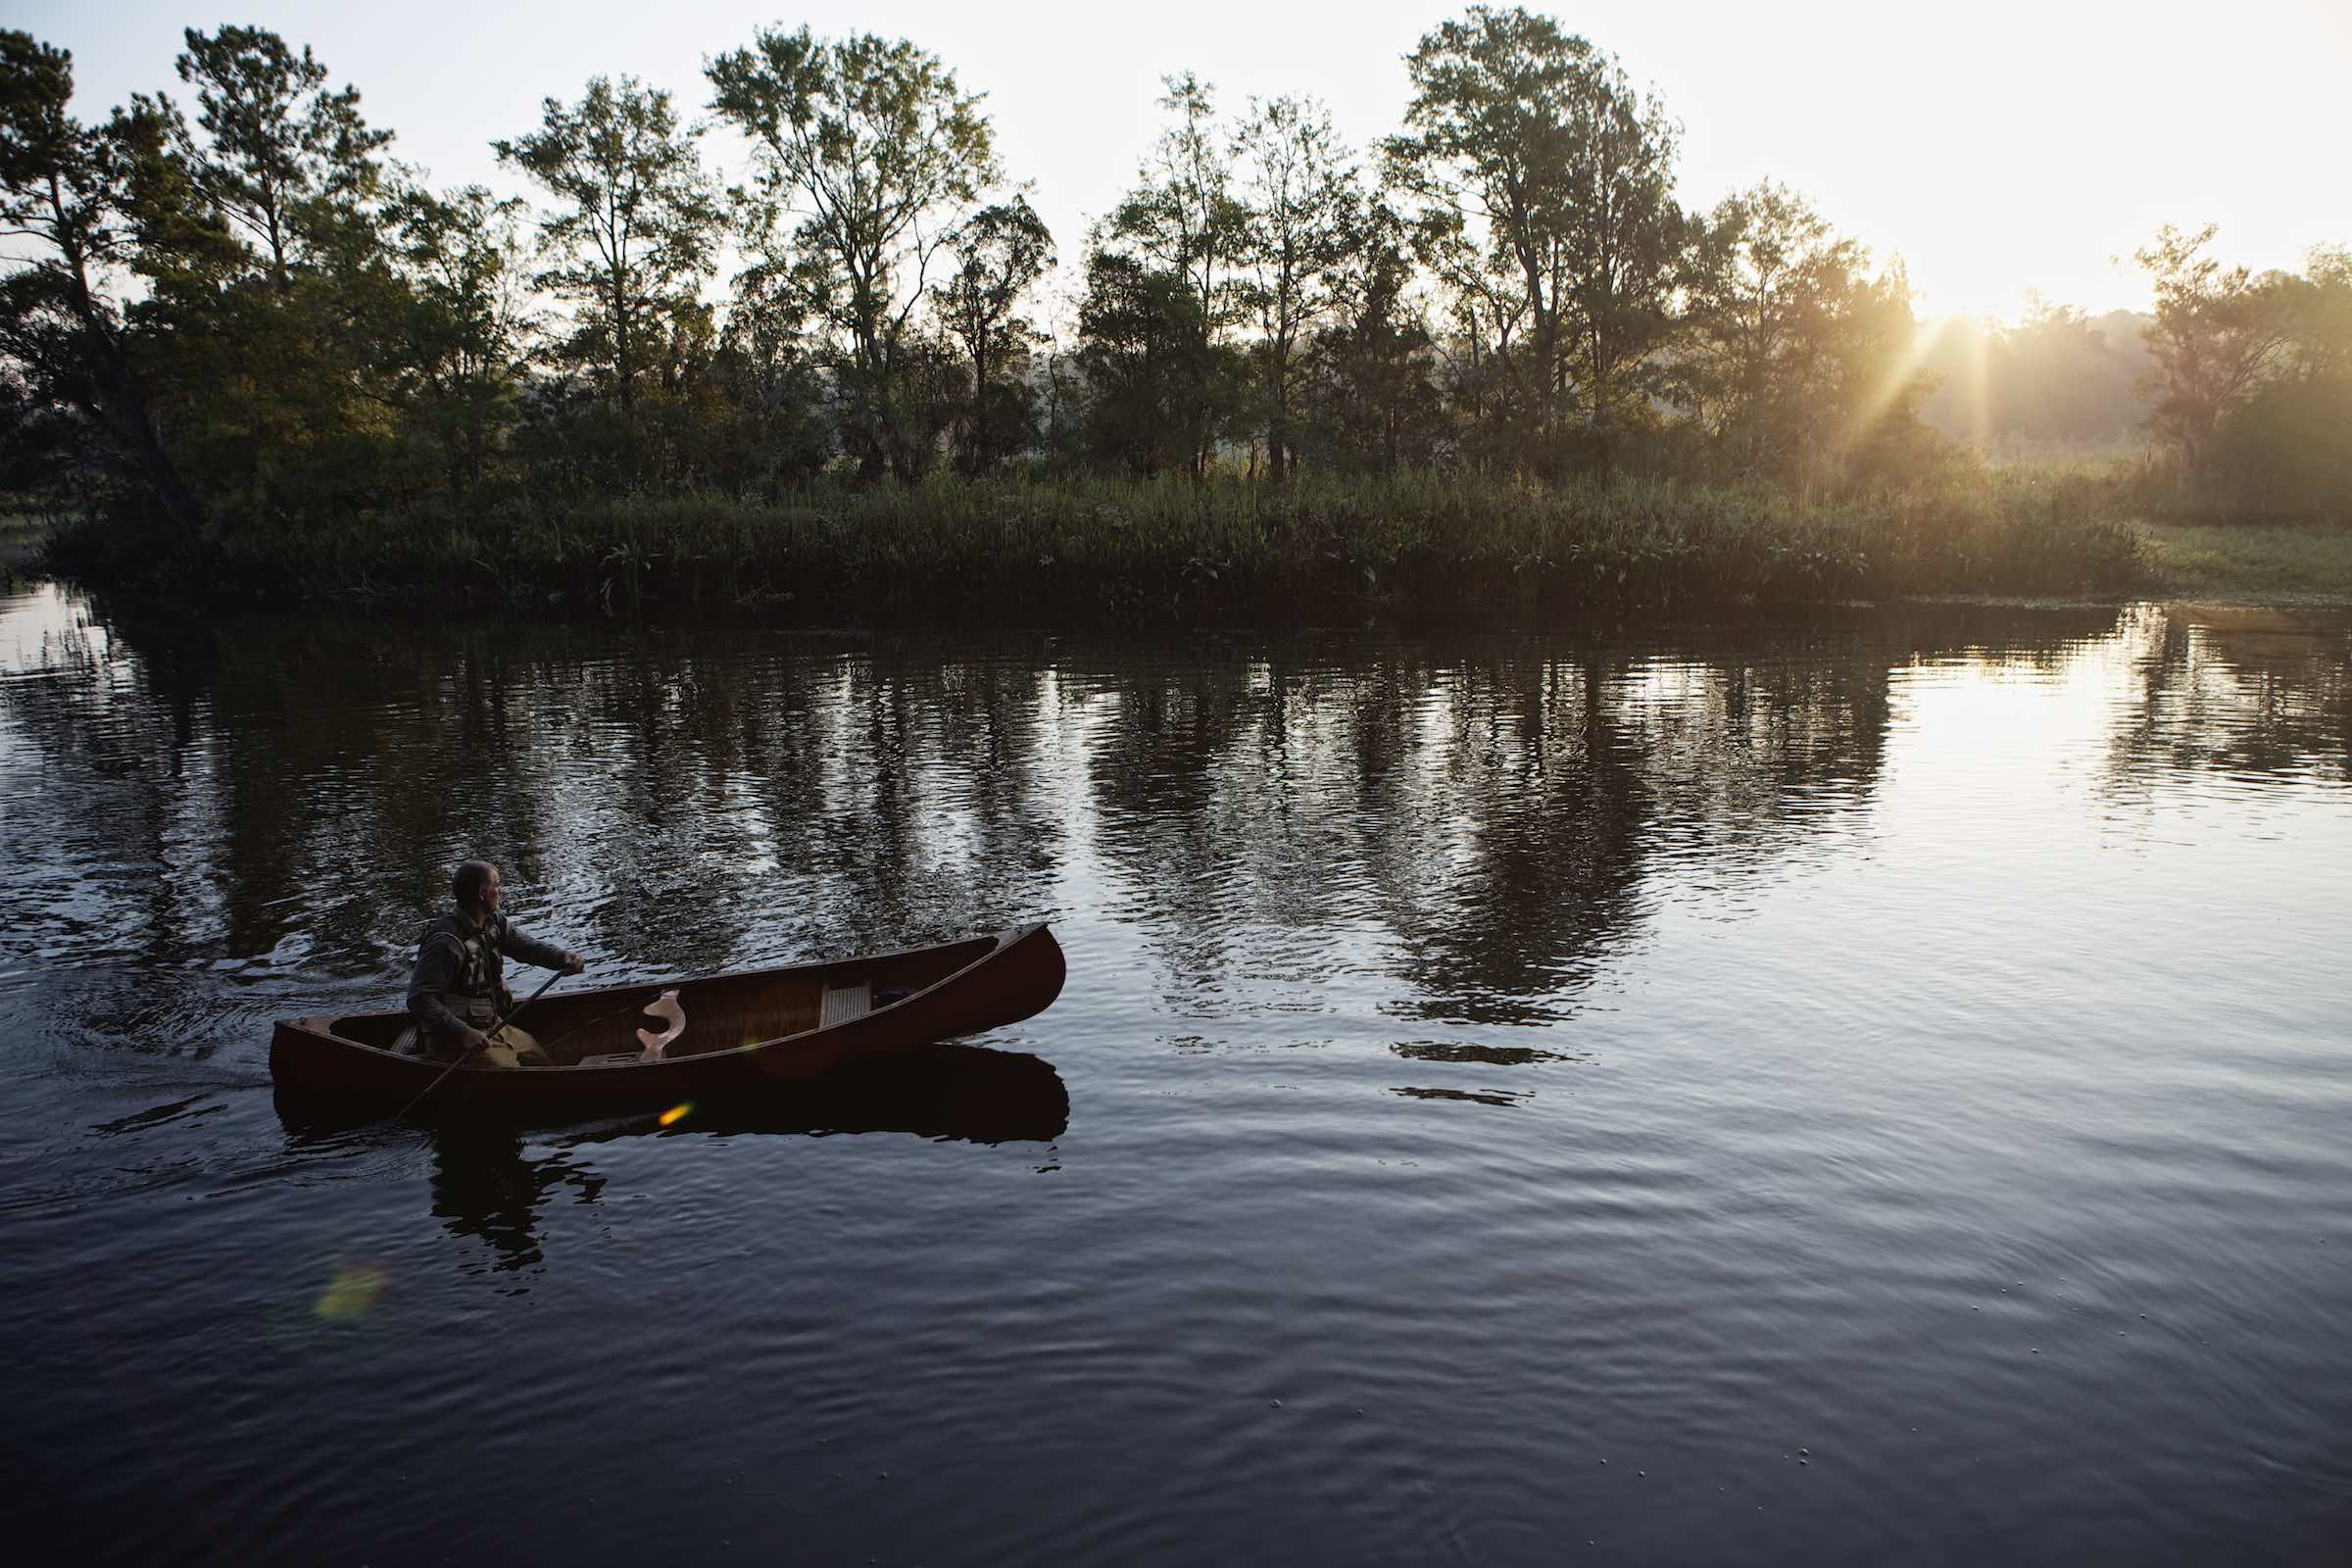 Jody Horton Photography - Canoer sitting in a wood canoe gliding through still waters at sunset.